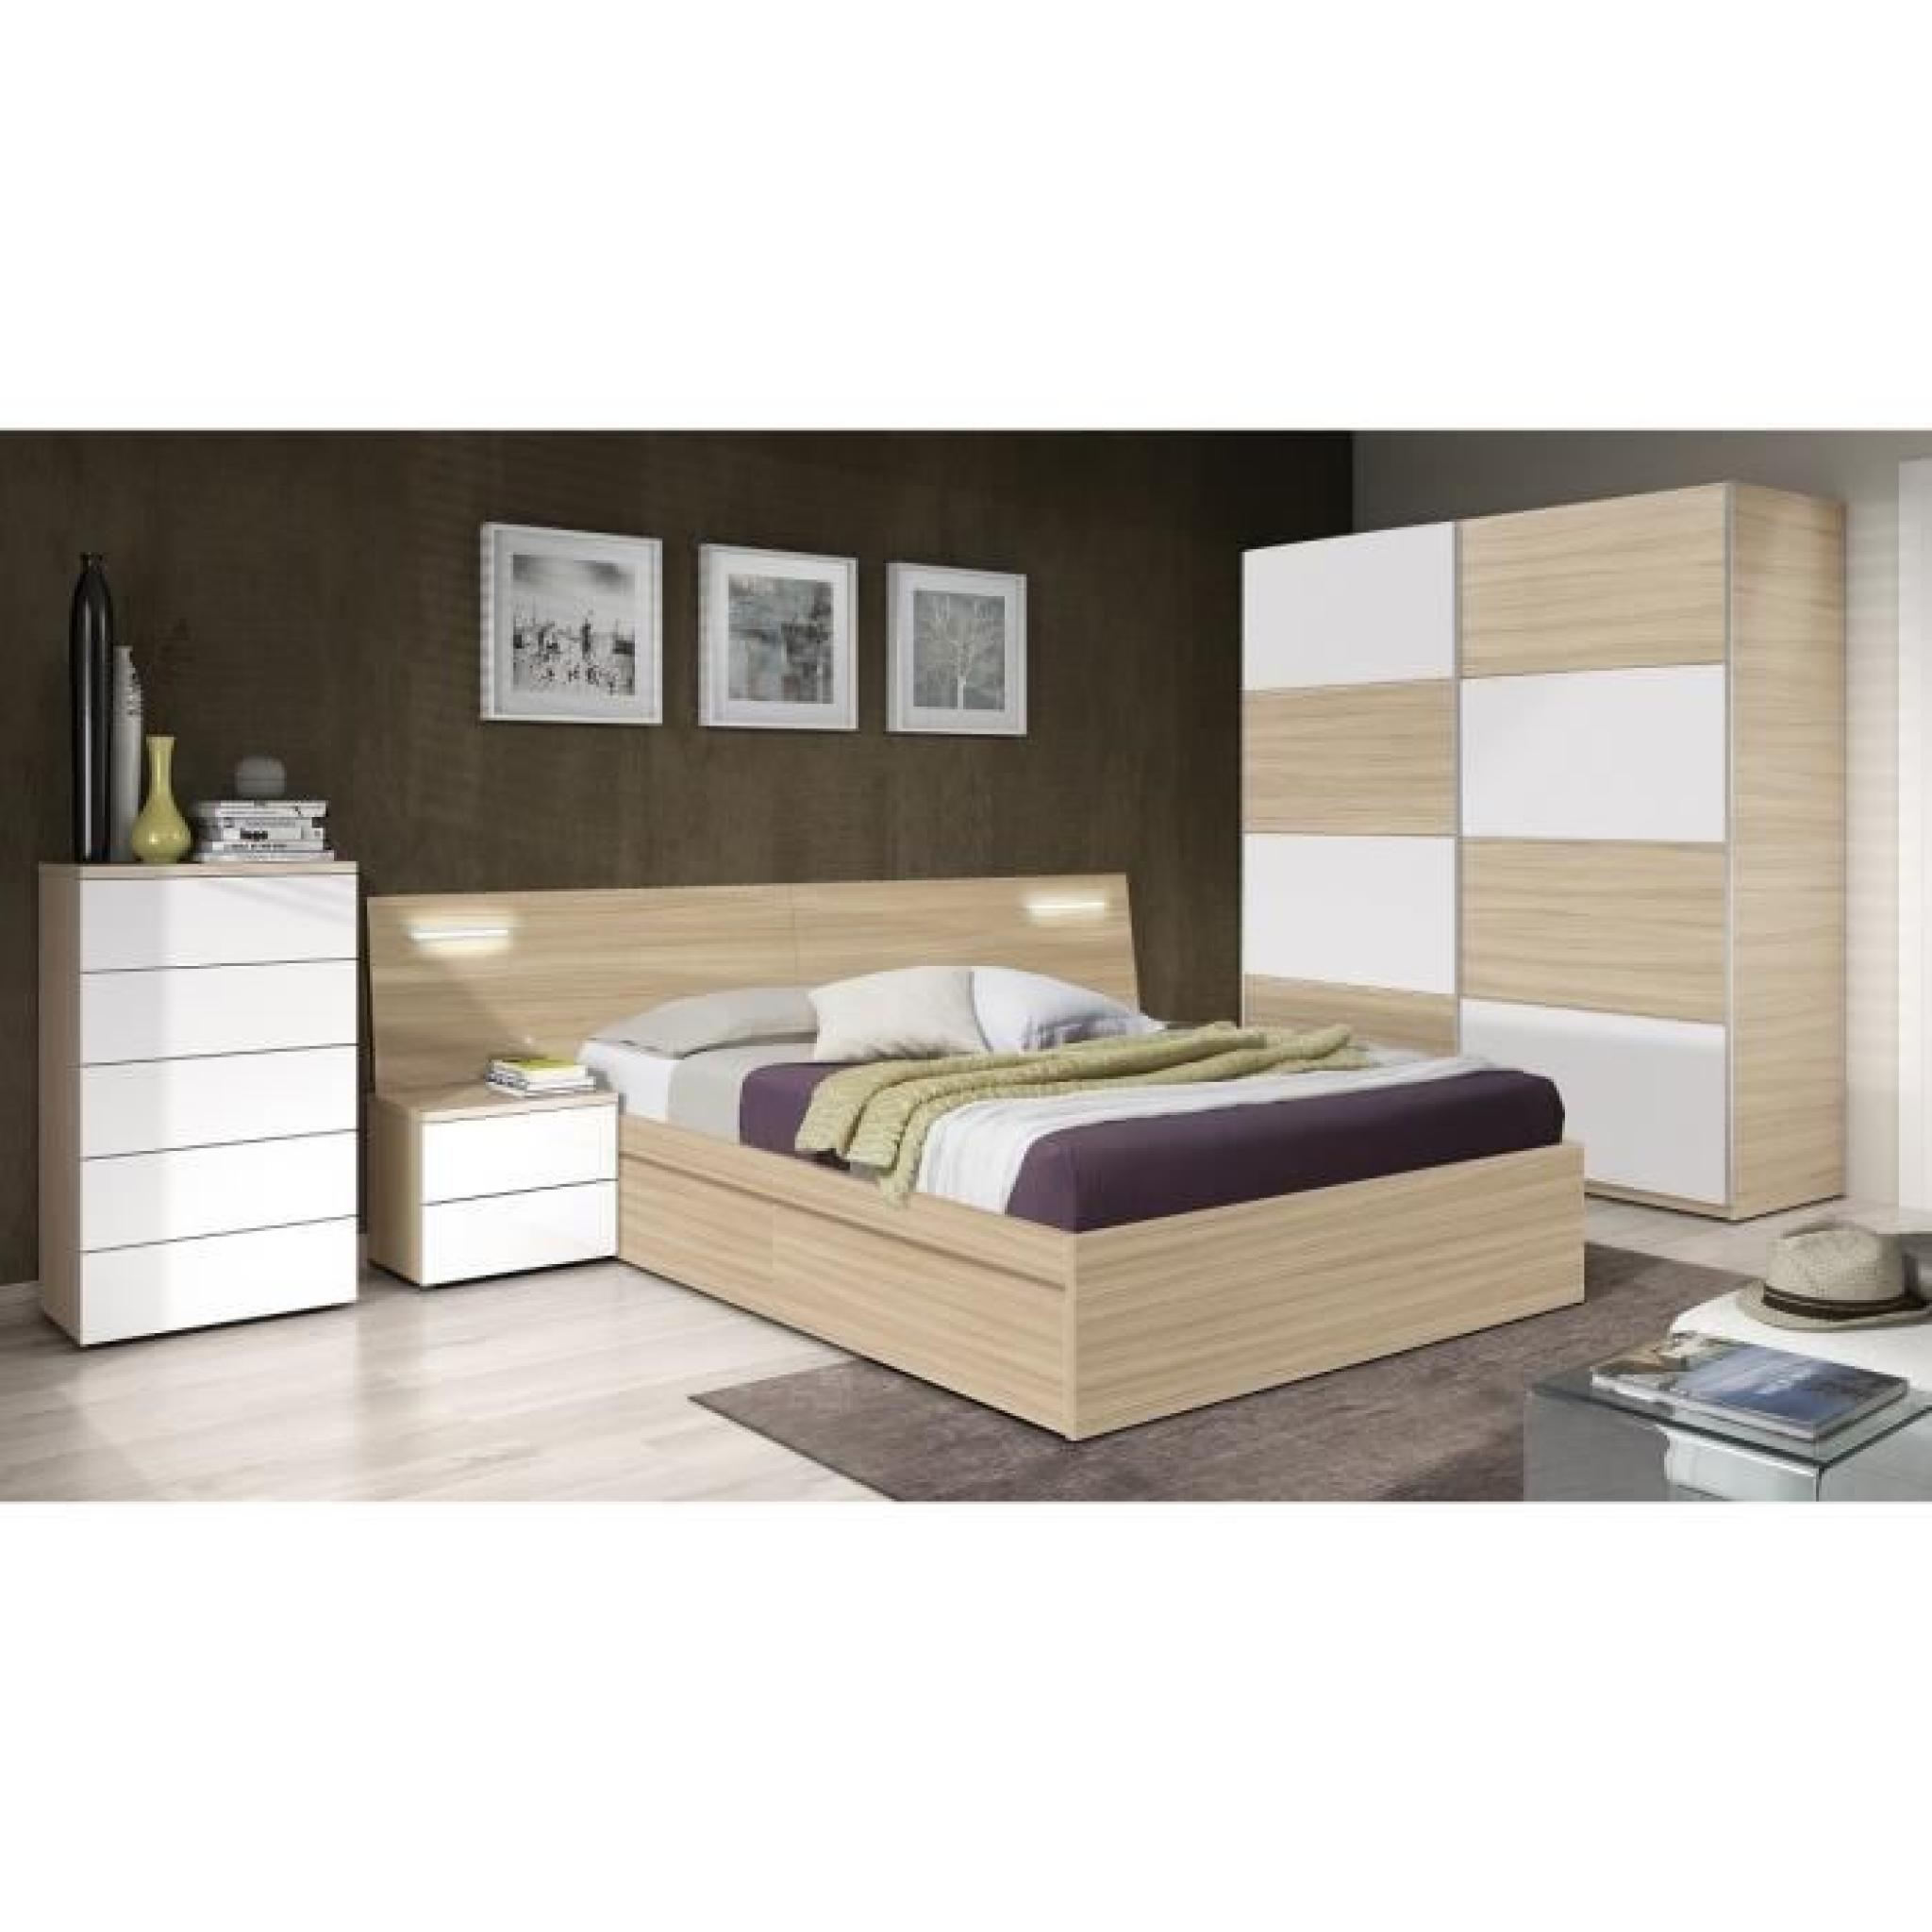 silvia t te de lit avec led 257 cm 2 chevets d cor bois et blanc brillant achat vente tete. Black Bedroom Furniture Sets. Home Design Ideas